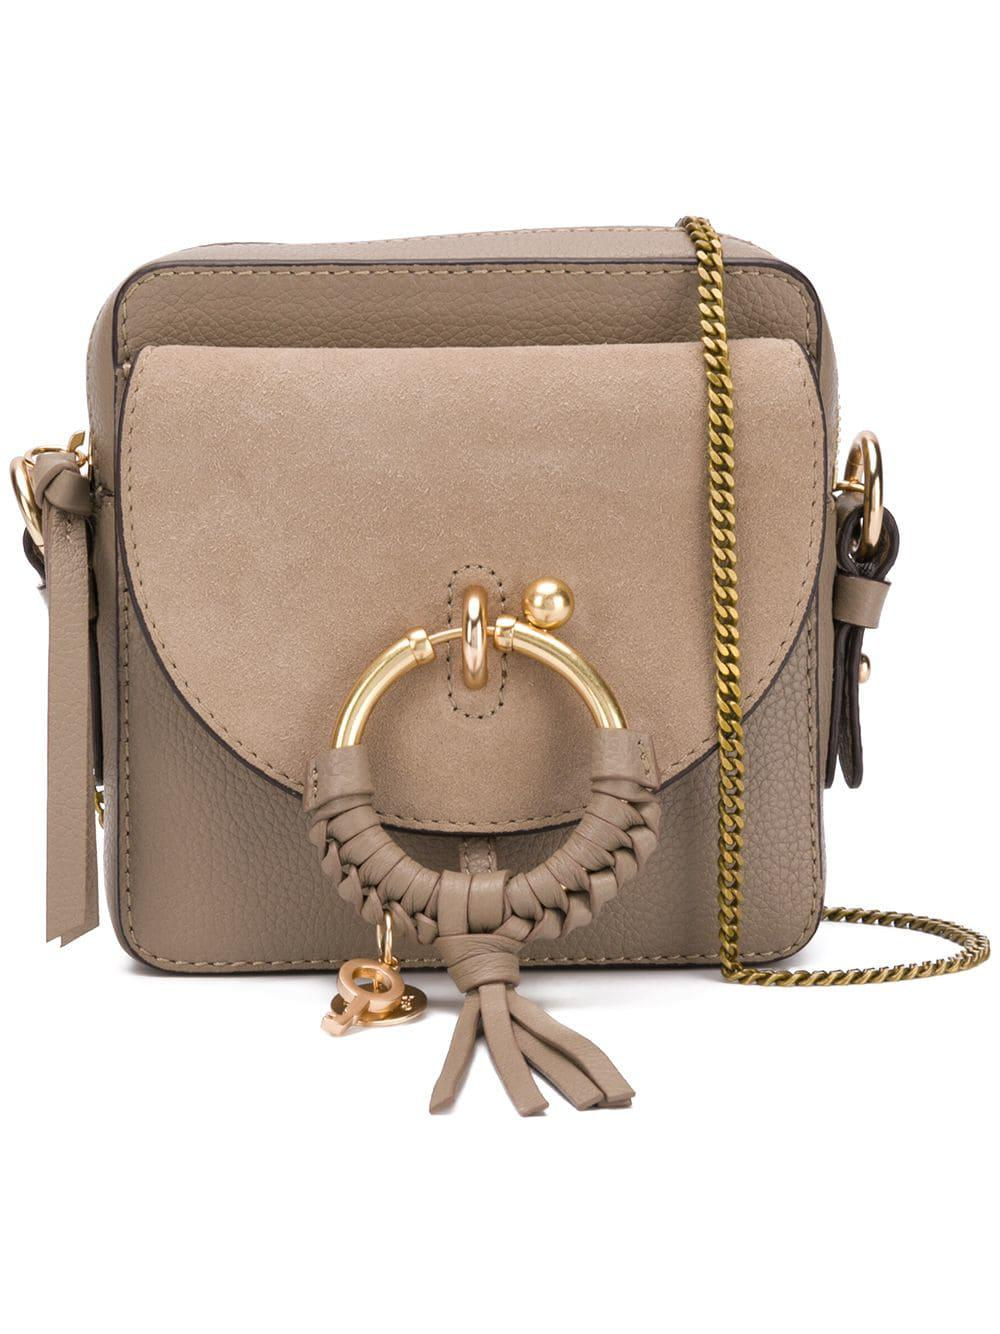 99c07d2a See By Chloé Leather Shoulder Bag in Gray - Lyst